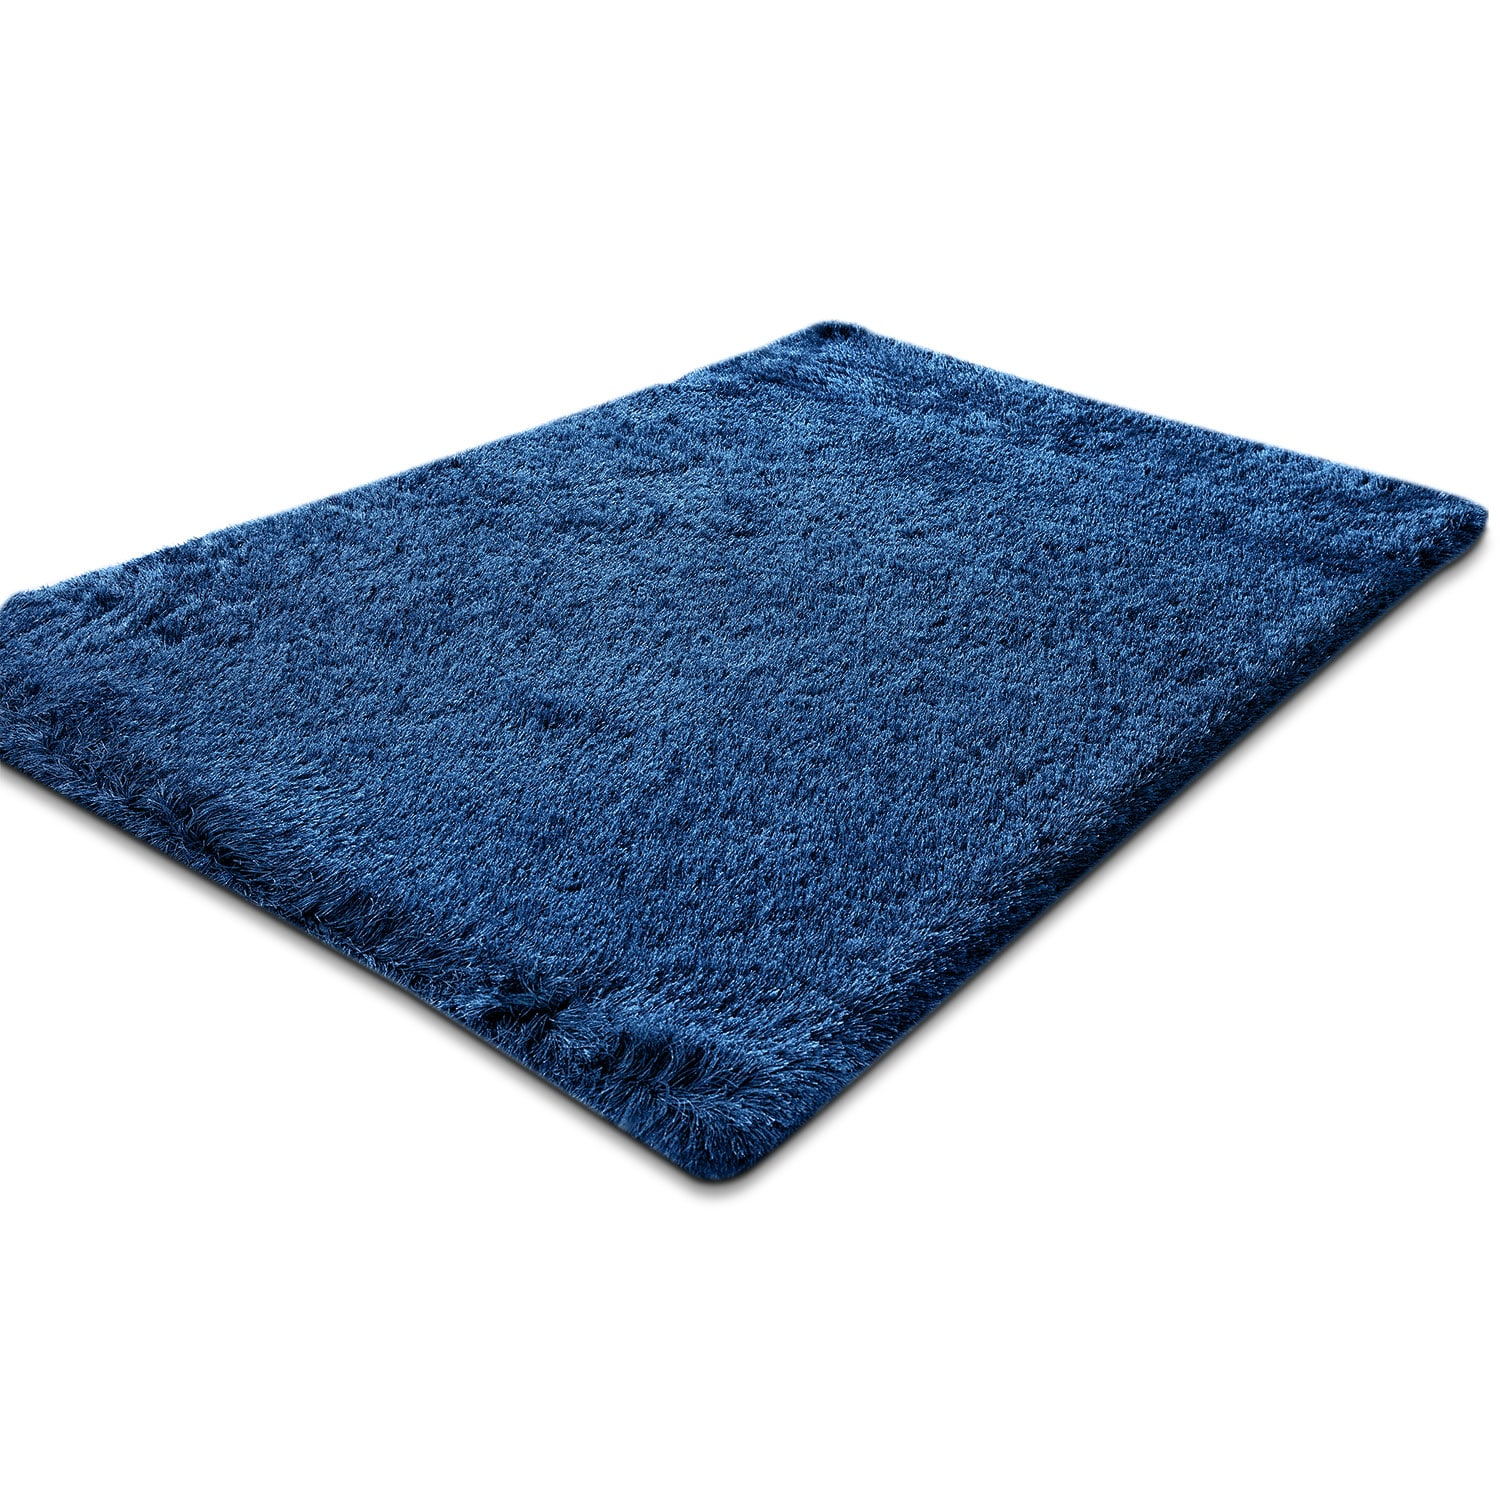 Rugs Furniture: Luxe 8' X 10' Area Rug - Sapphire